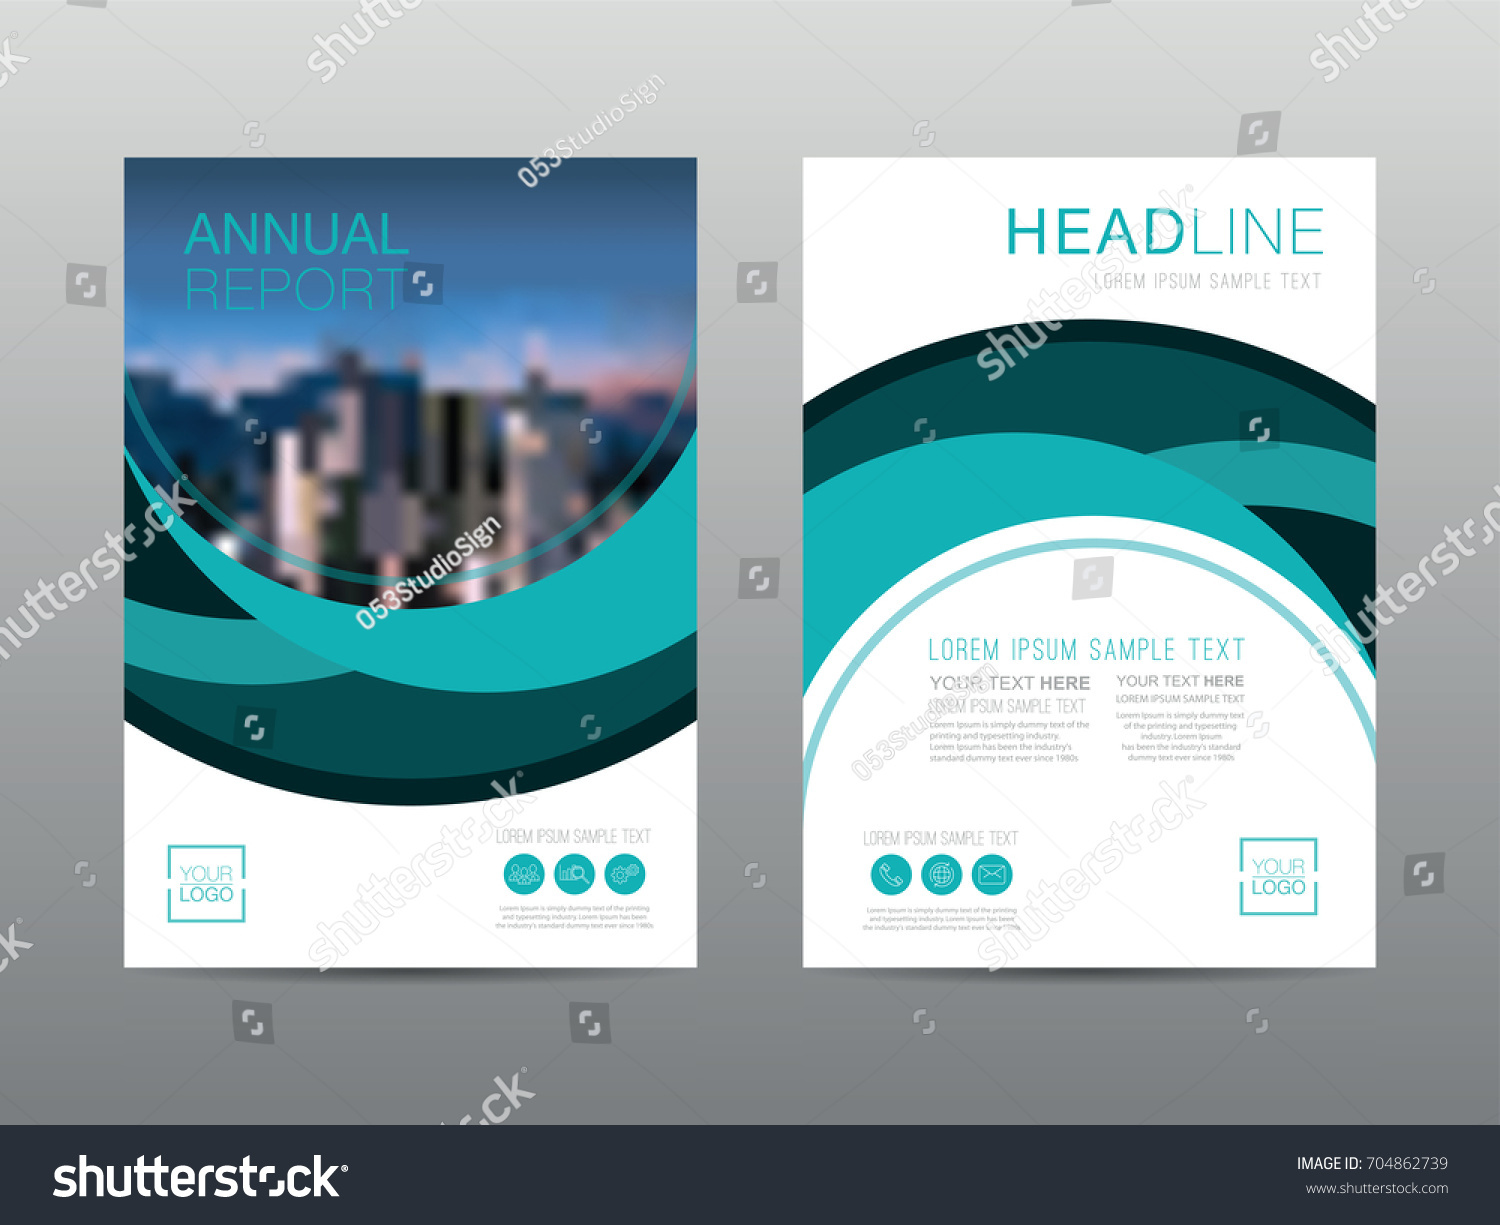 Annual Report Brochure Layout Design Template Stock Vector HD ...